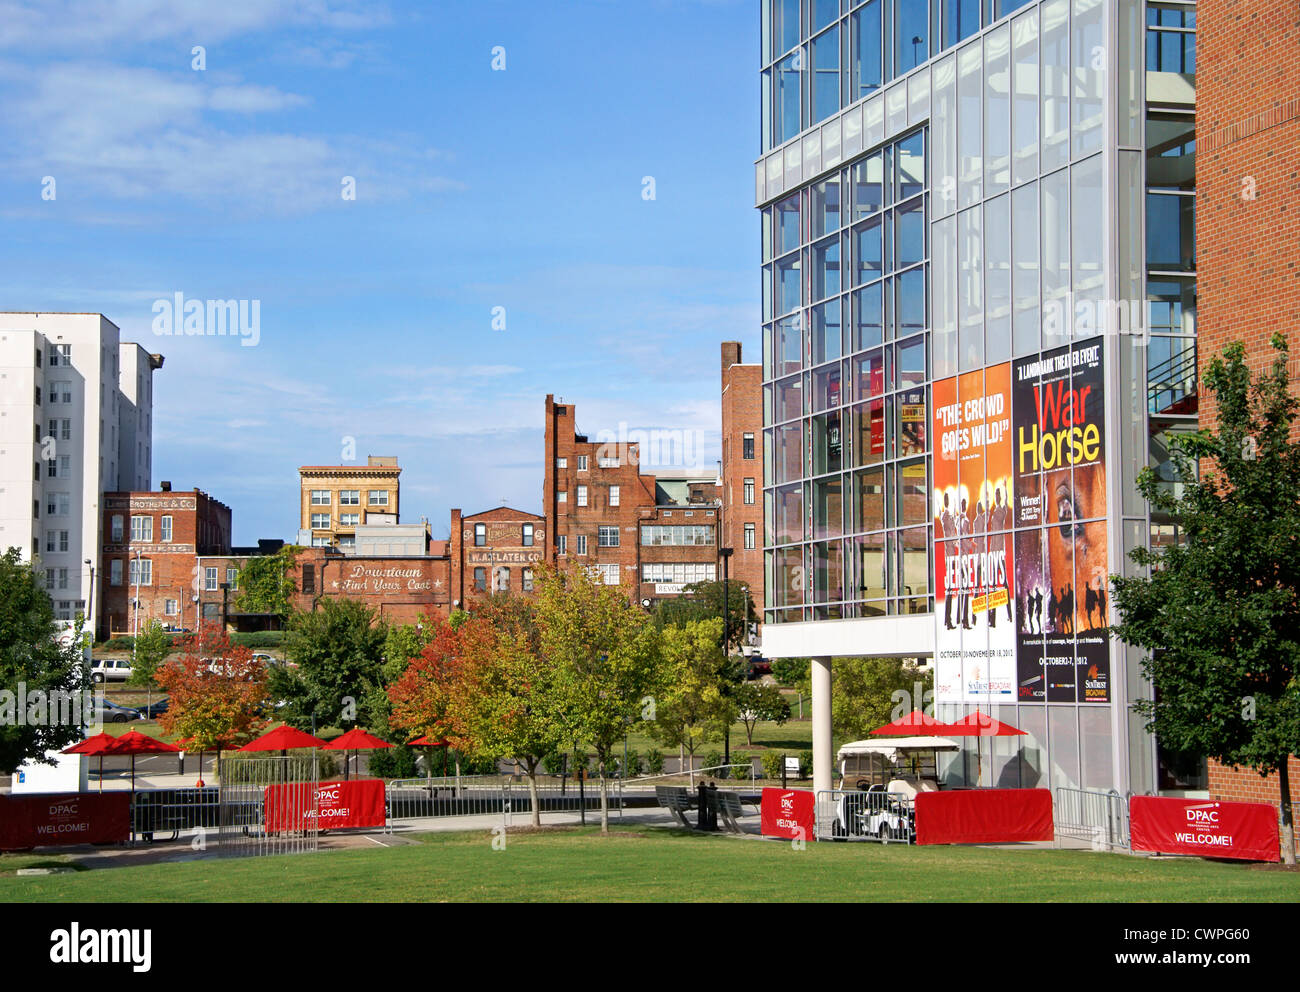 Durham, North Carolina, NC. Durham Performing Arts Center in the foreground overlooking old brick buildings in downtown. - Stock Image